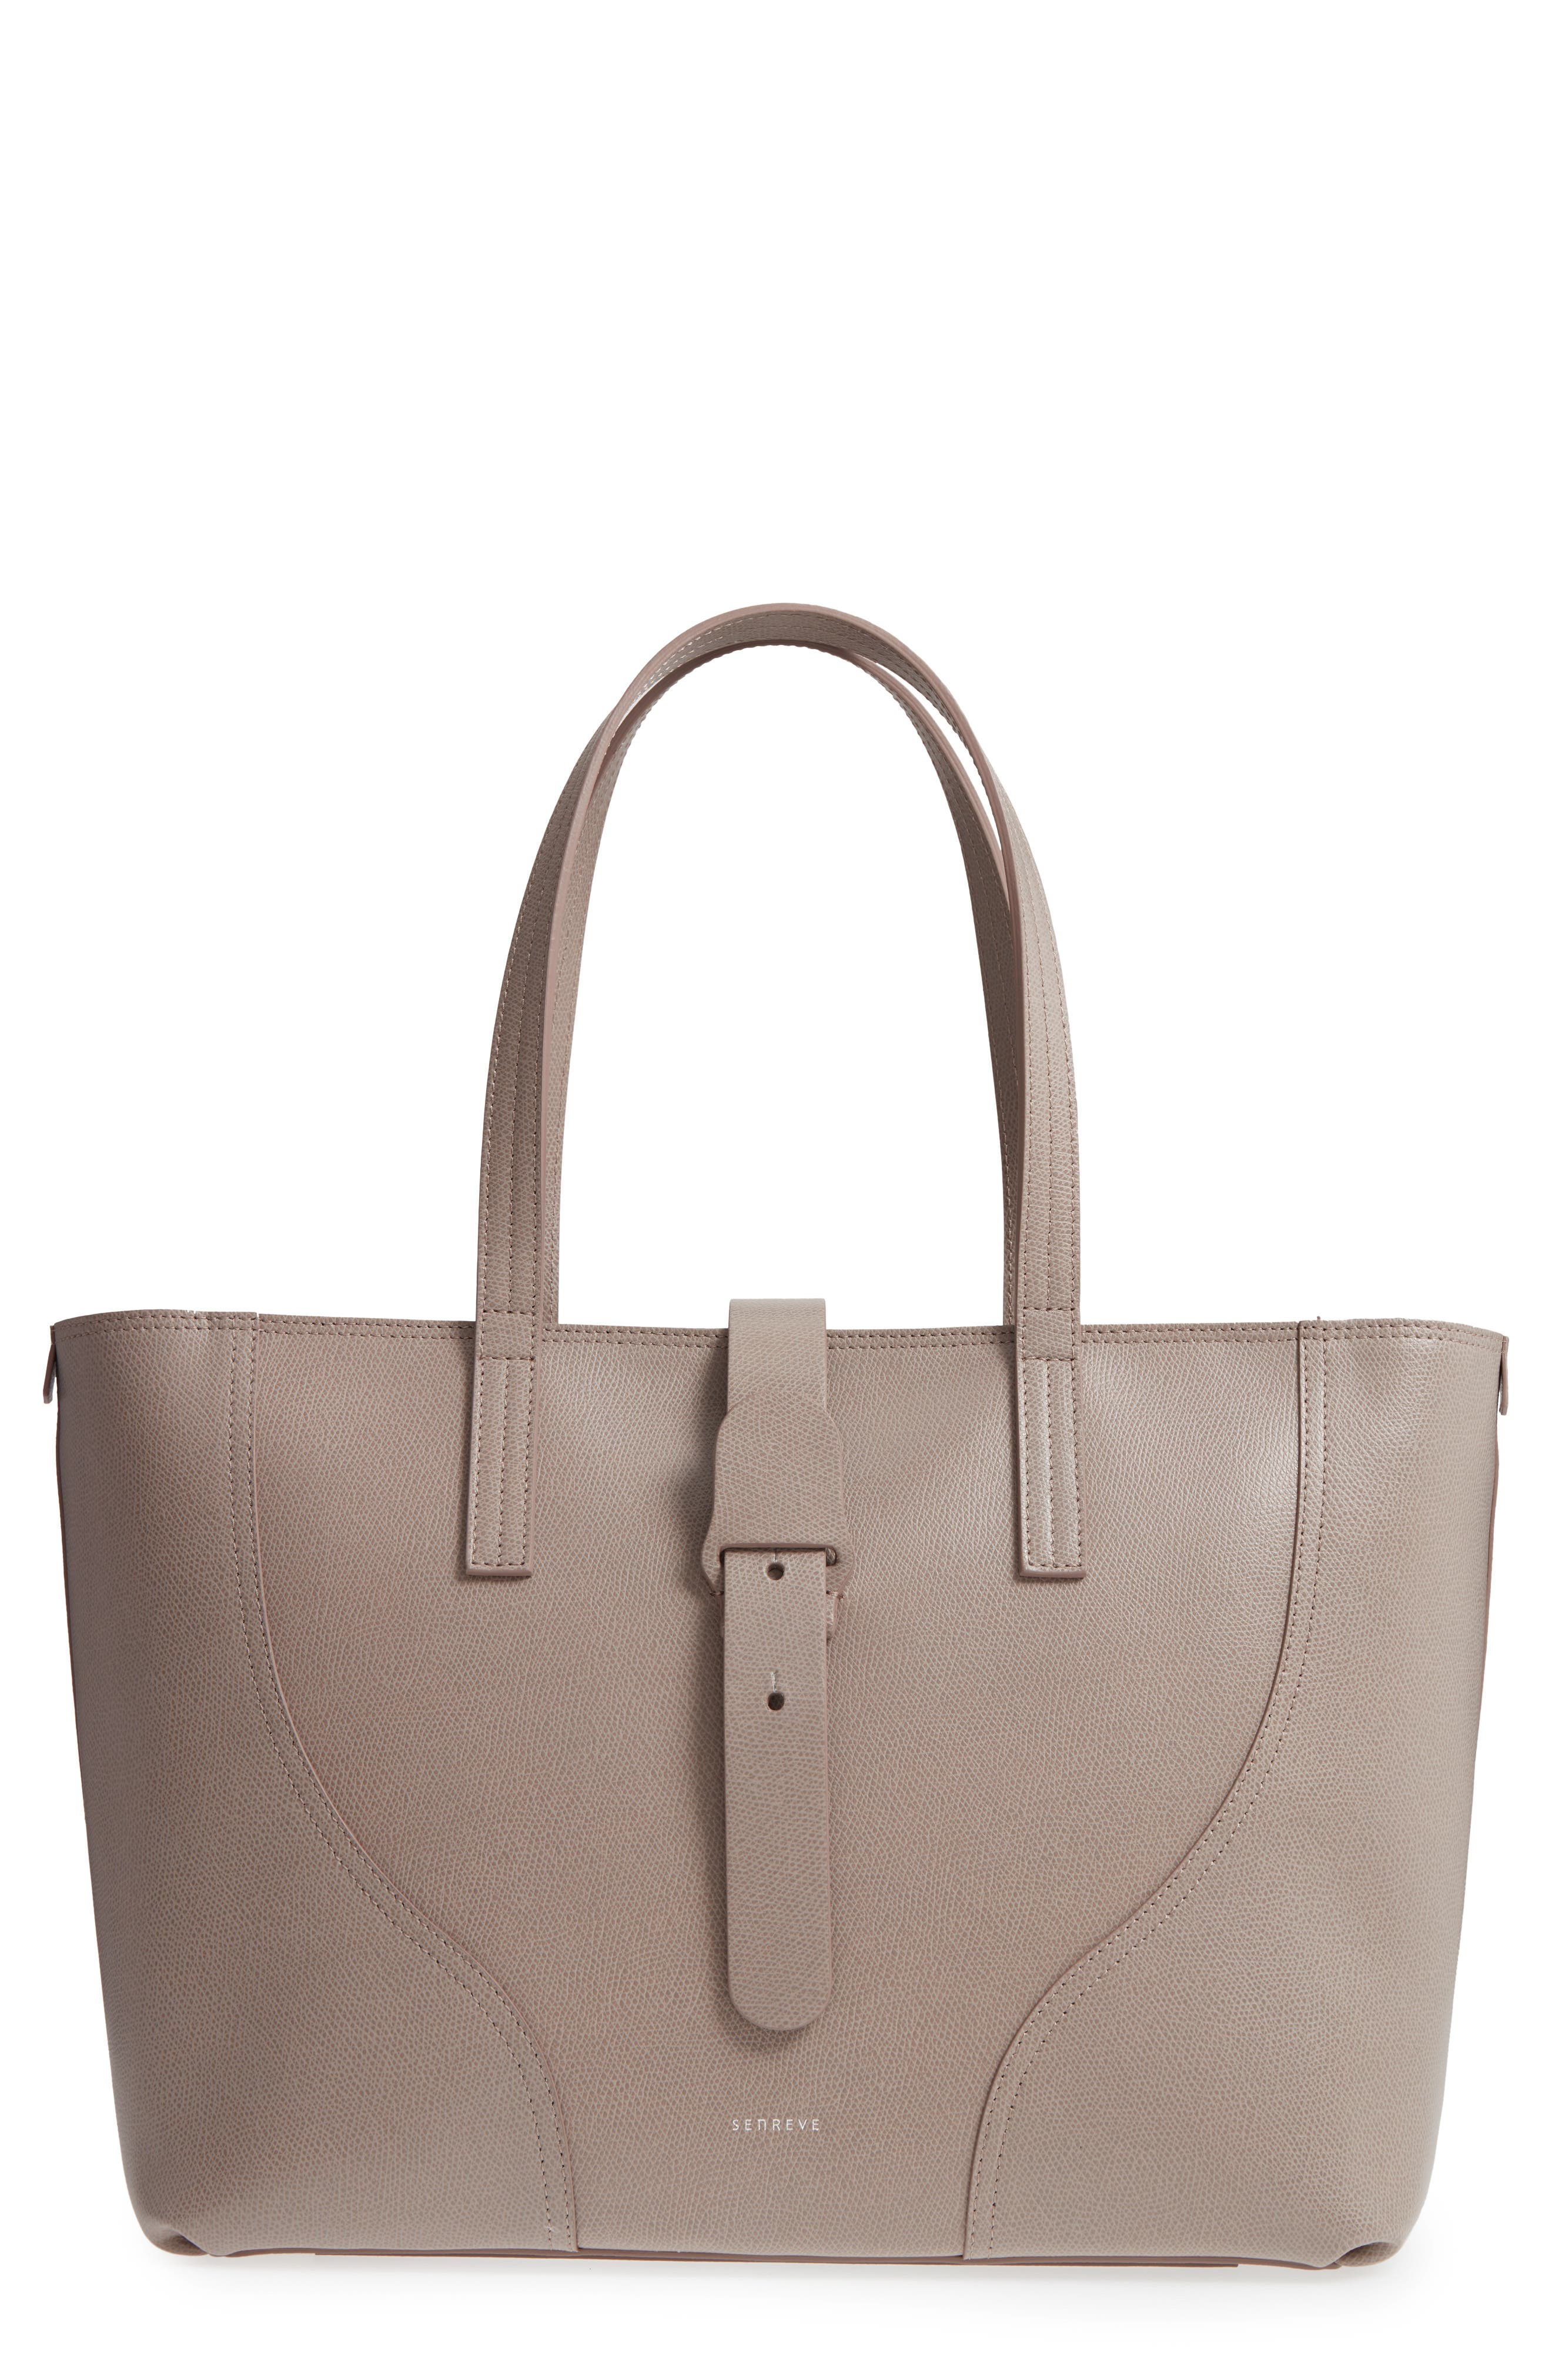 Voya Pebbled Leather Tote,                         Main,                         color, SAND